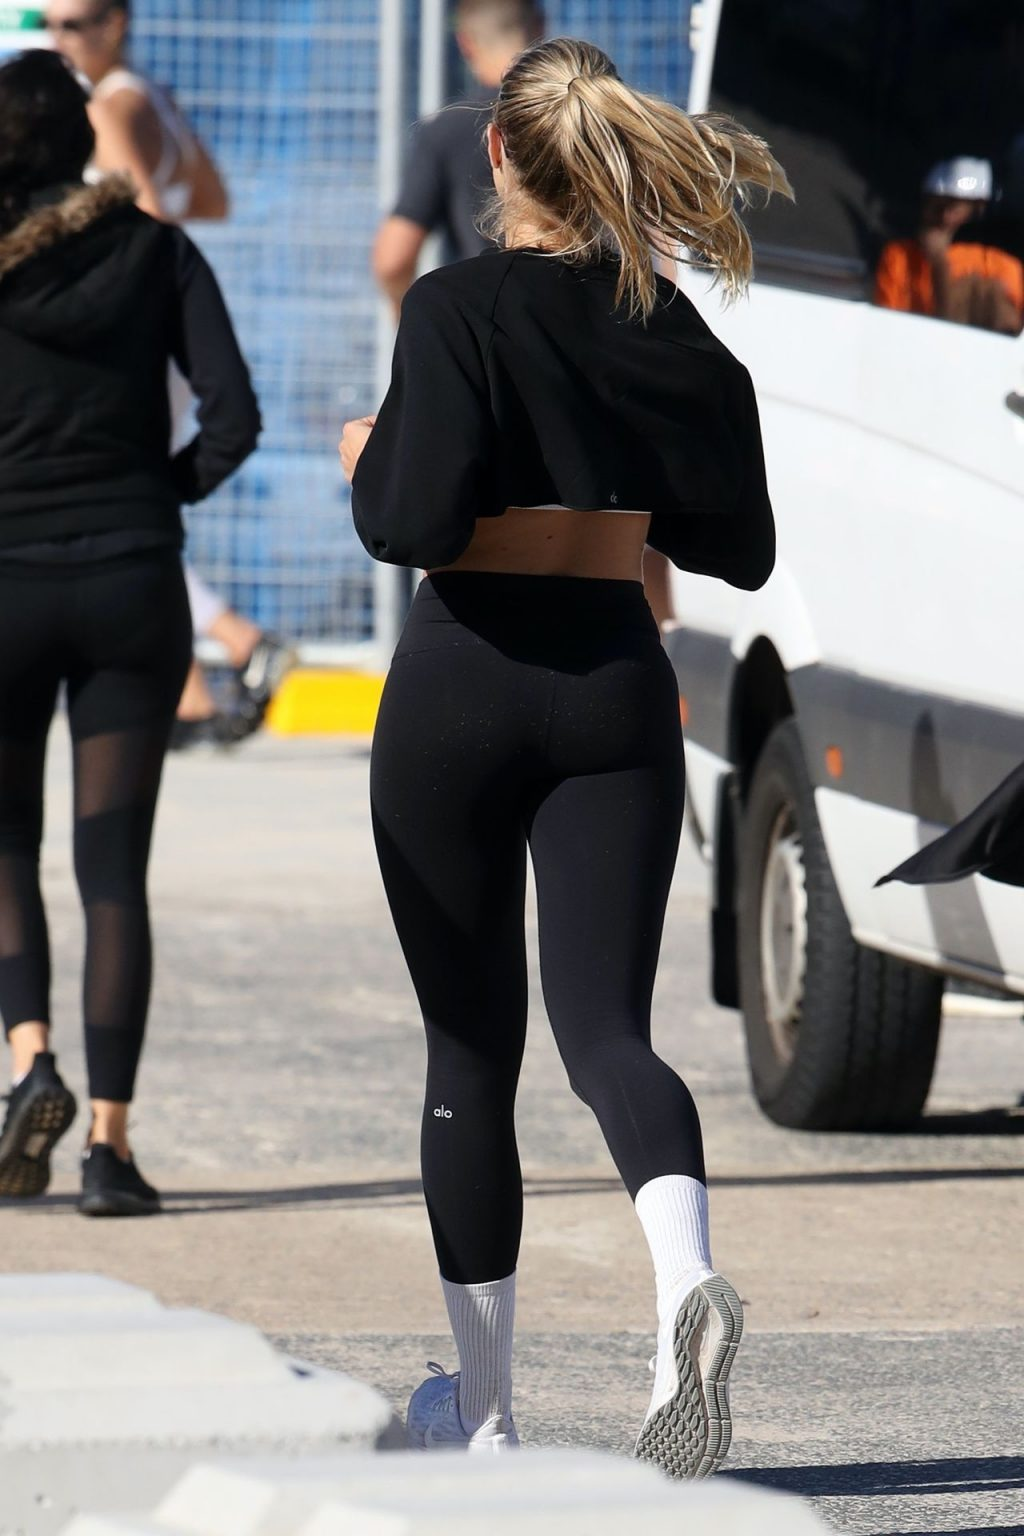 Natalie Roser Displays Her Fit Body in Sydney (28 Photos)